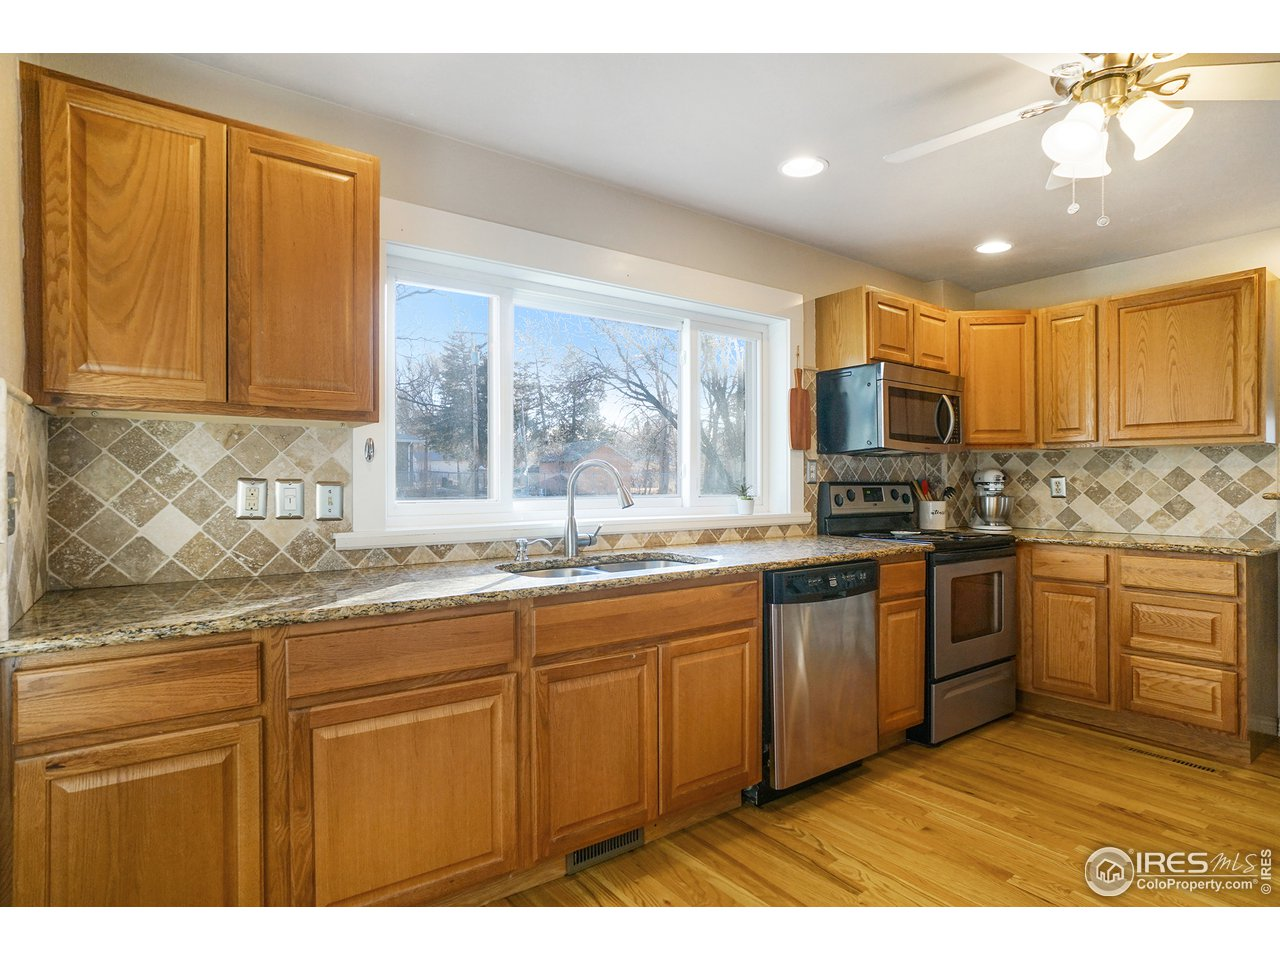 Large kitchen with granite counter tops.